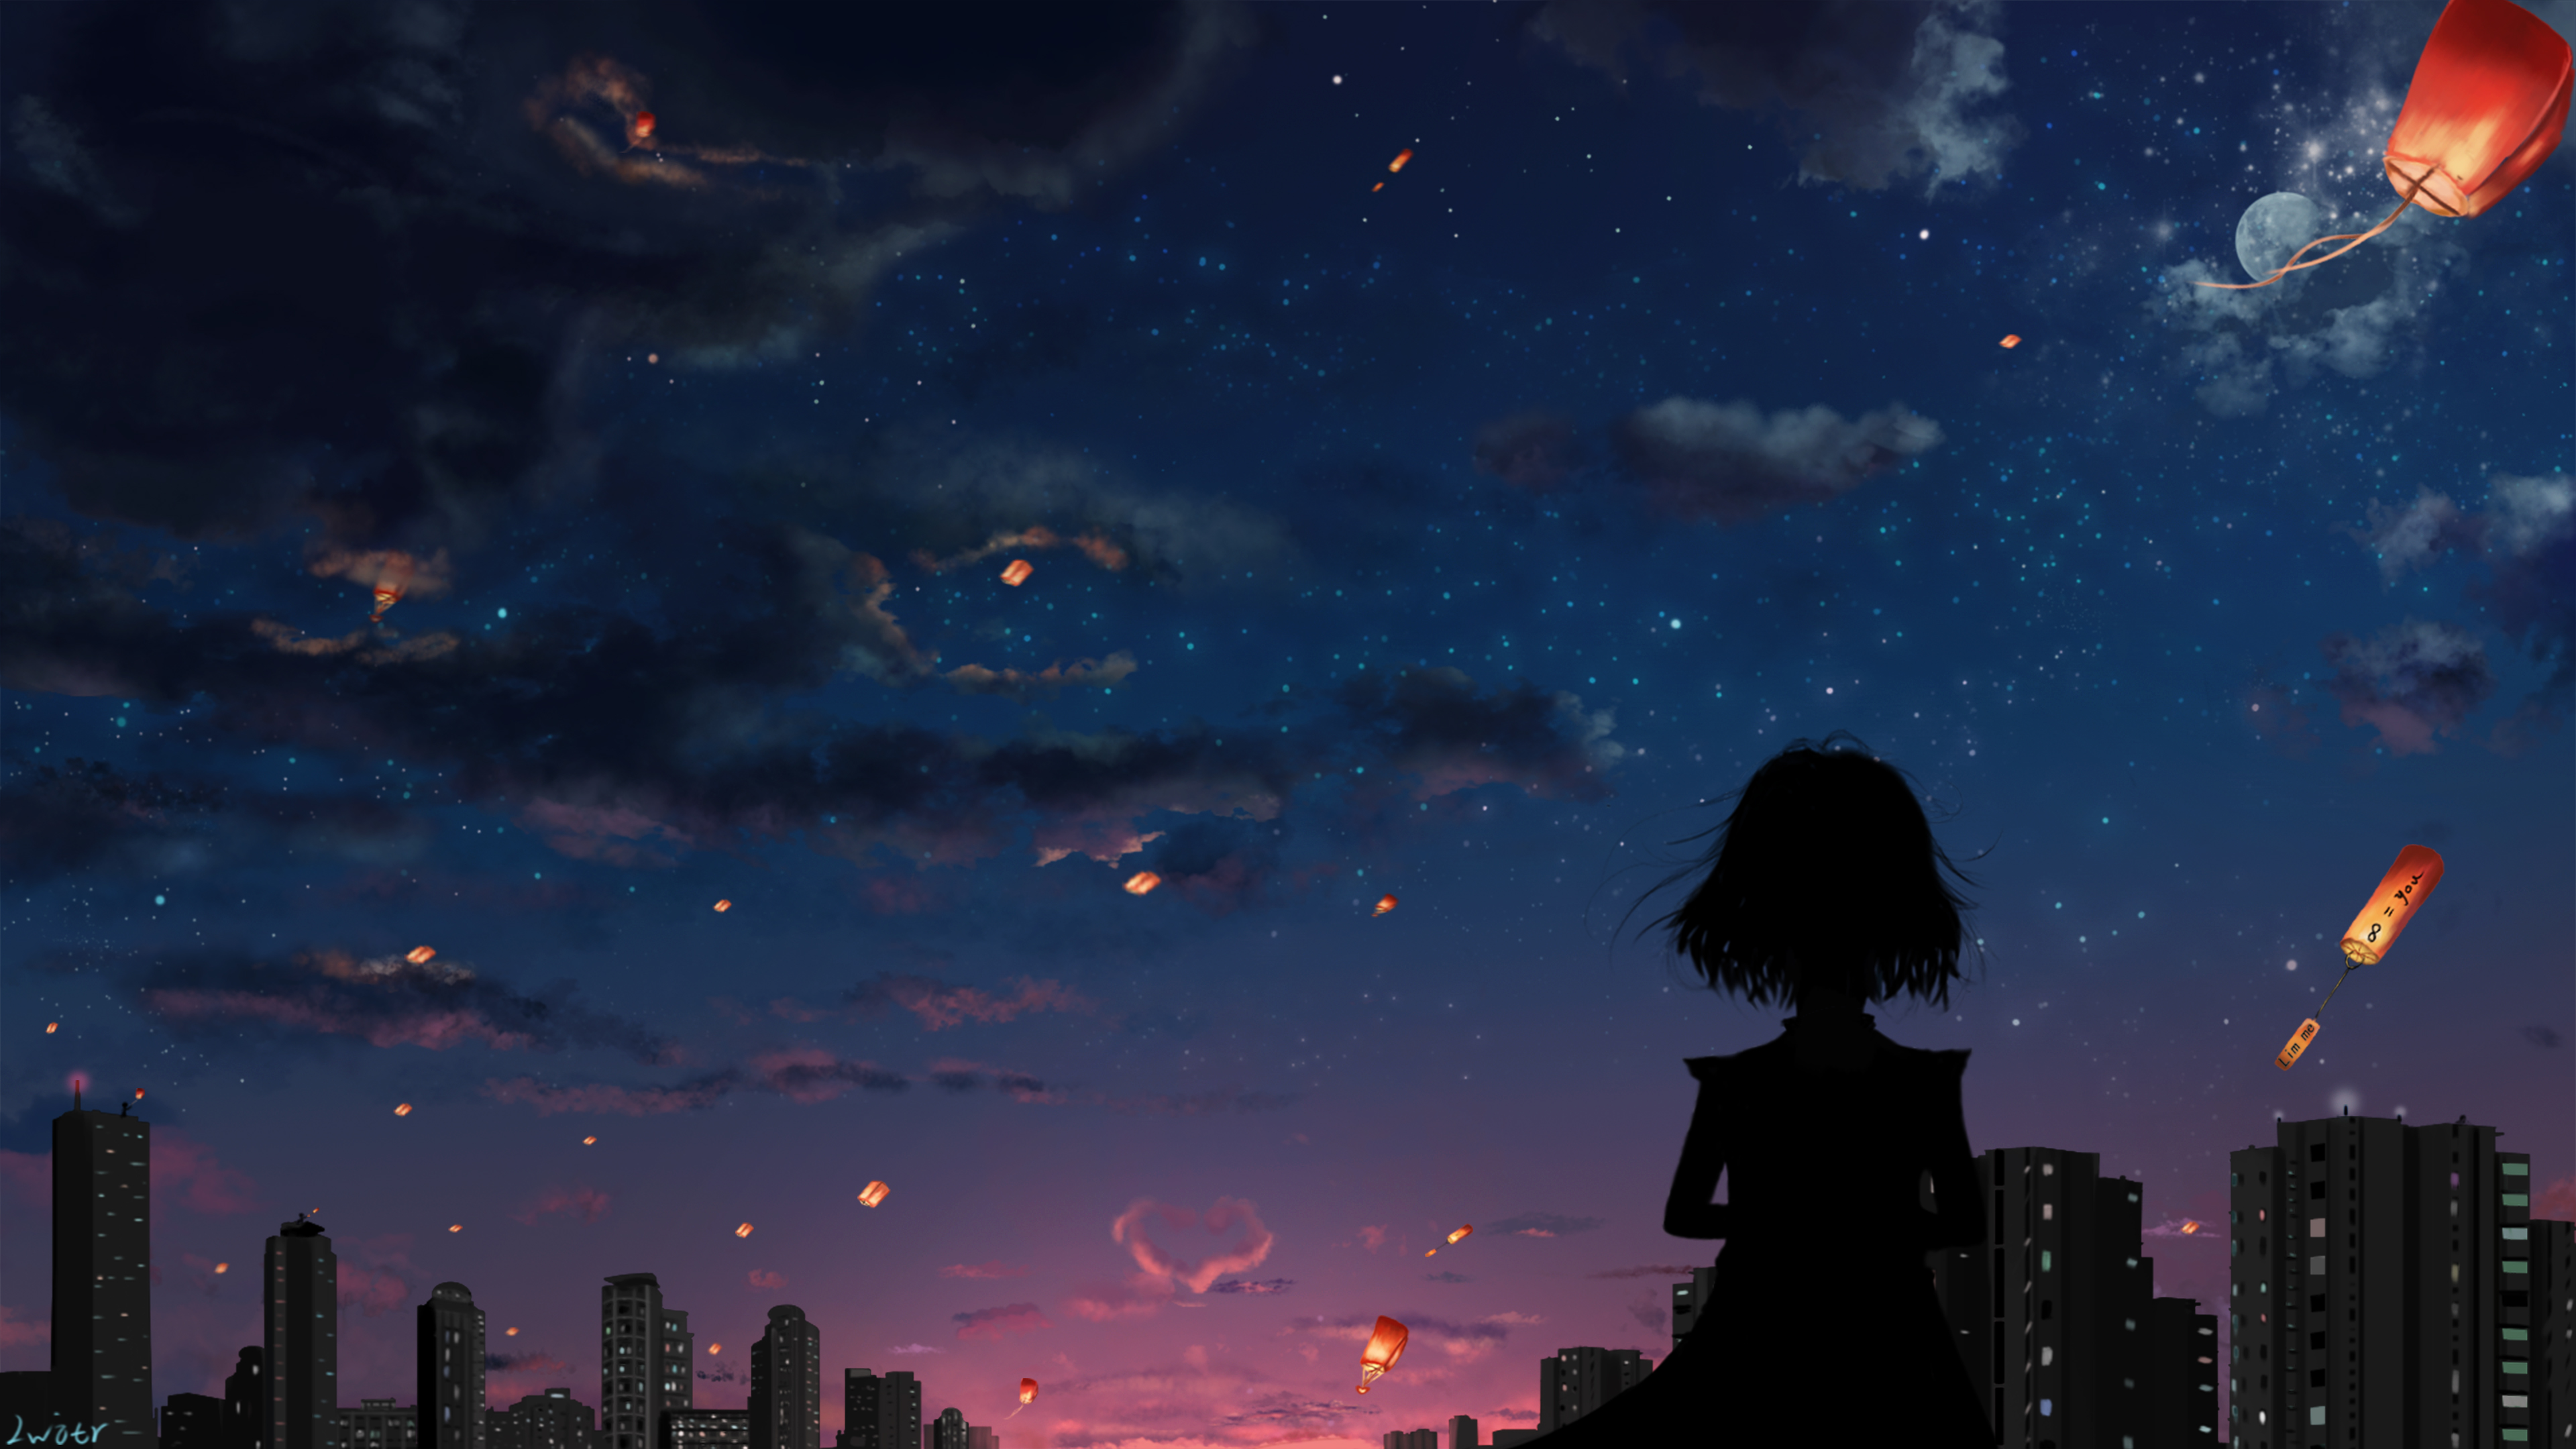 Anime Girl Overlooking A Cityscape With Flying Lanterns In The Sky 4k Ultra Hd Wallpaper Background Image 3840x2160 Id 1066705 Wallpaper Abyss